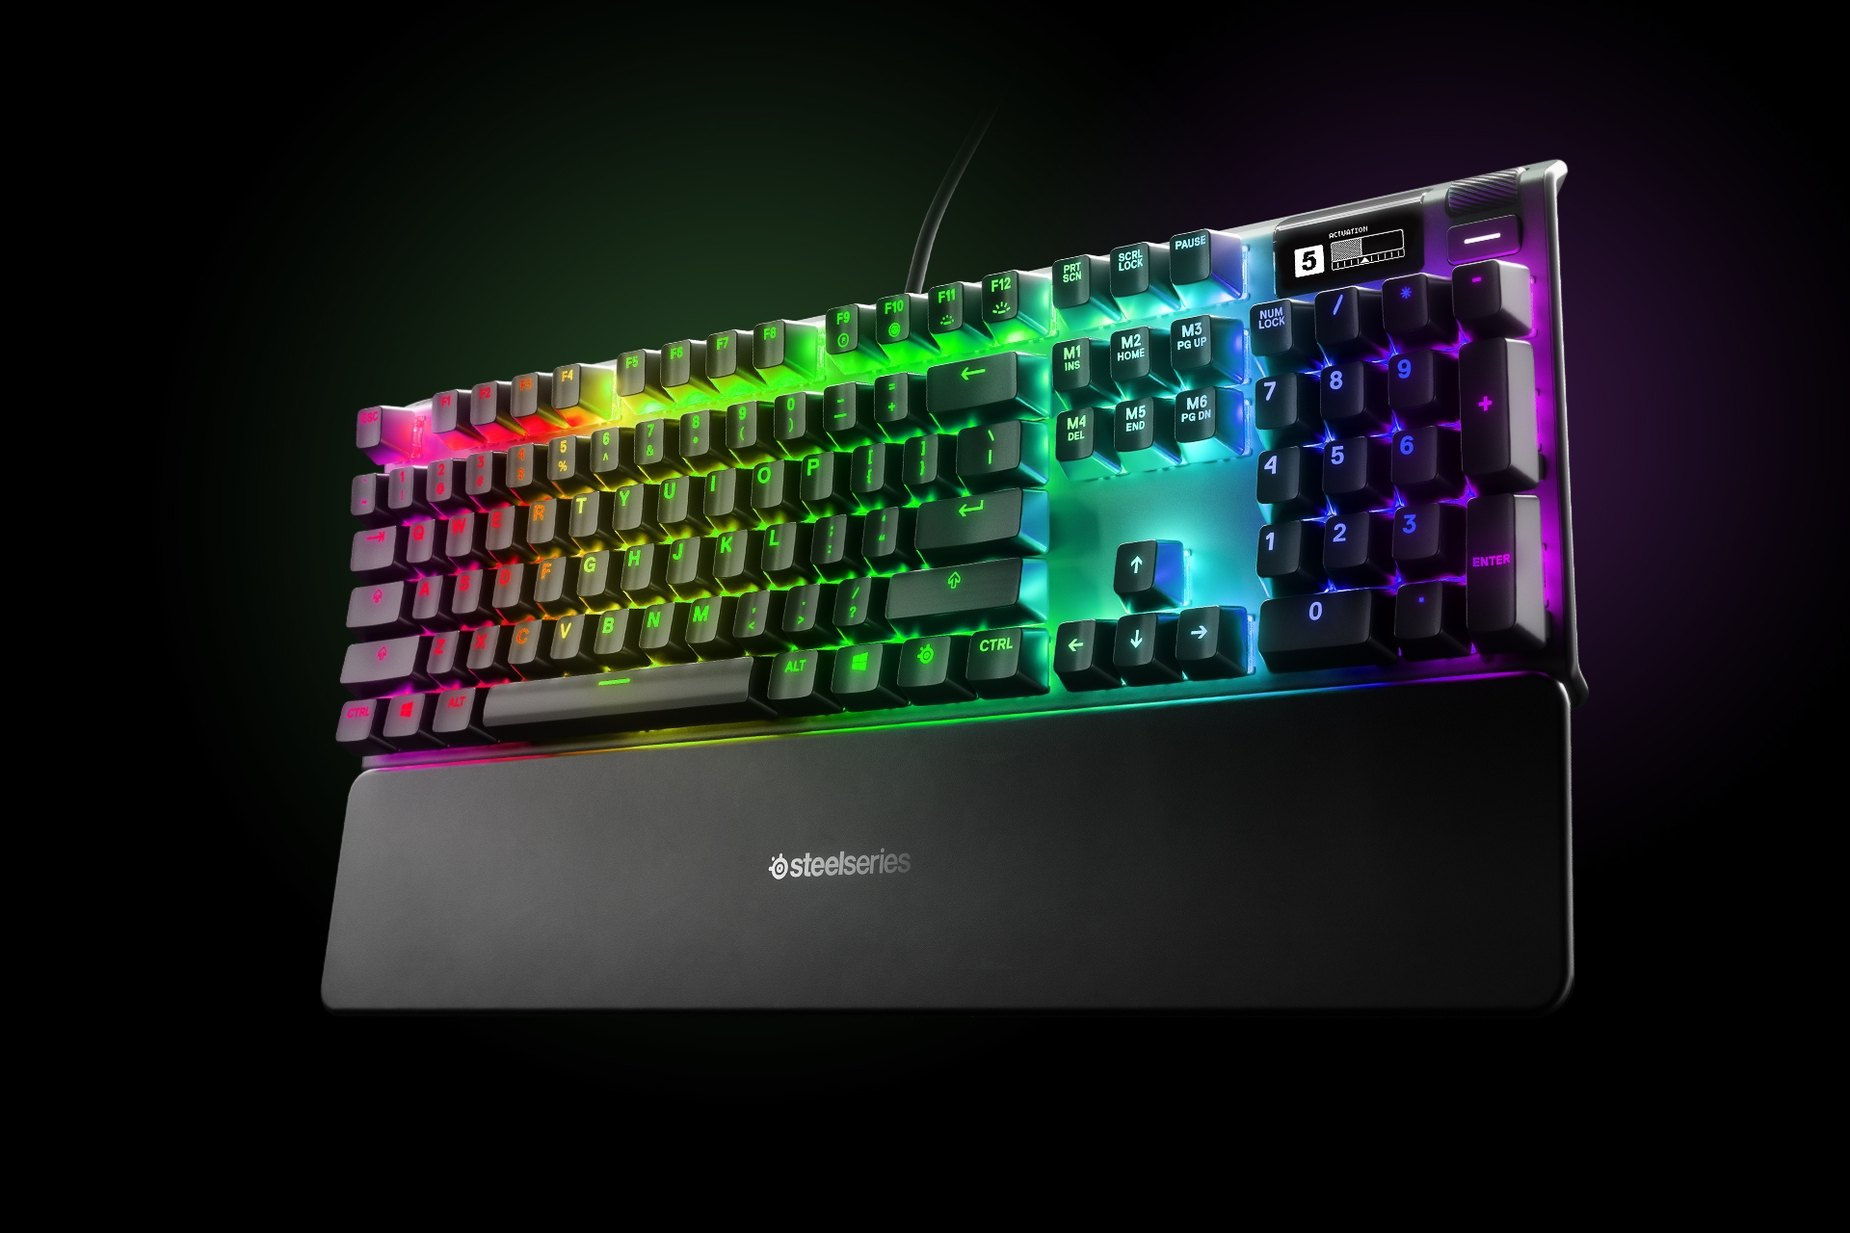 Thai - APEX PRO gaming keyboard with the illumination lit up on dark background, also shows the OLED screen and controls used to change settings, switch actuation, and adjust audio